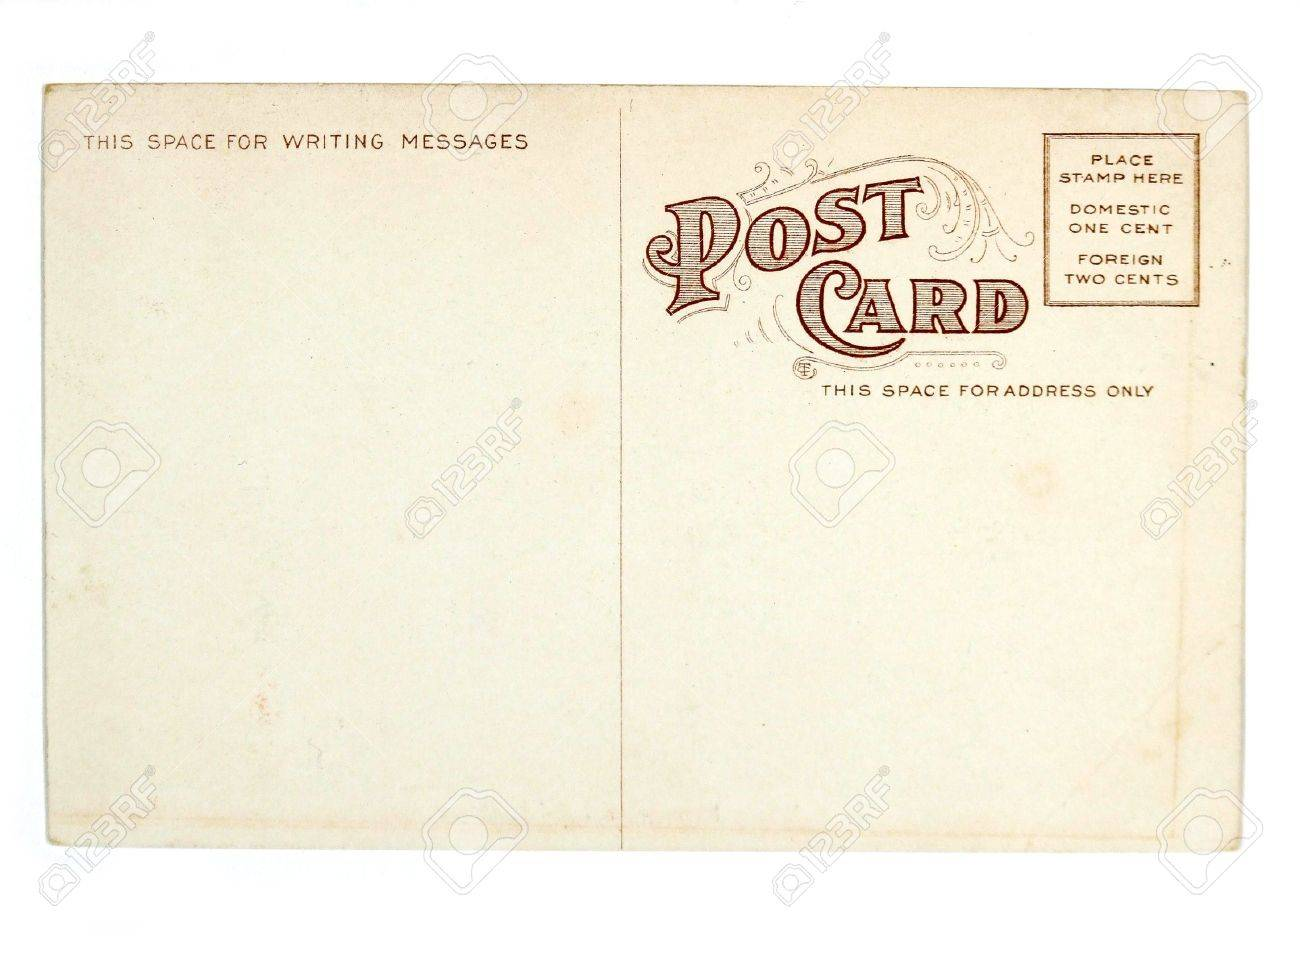 Vintage postcard. Collectible - mail related object. Antique. Stock Photo - 689419